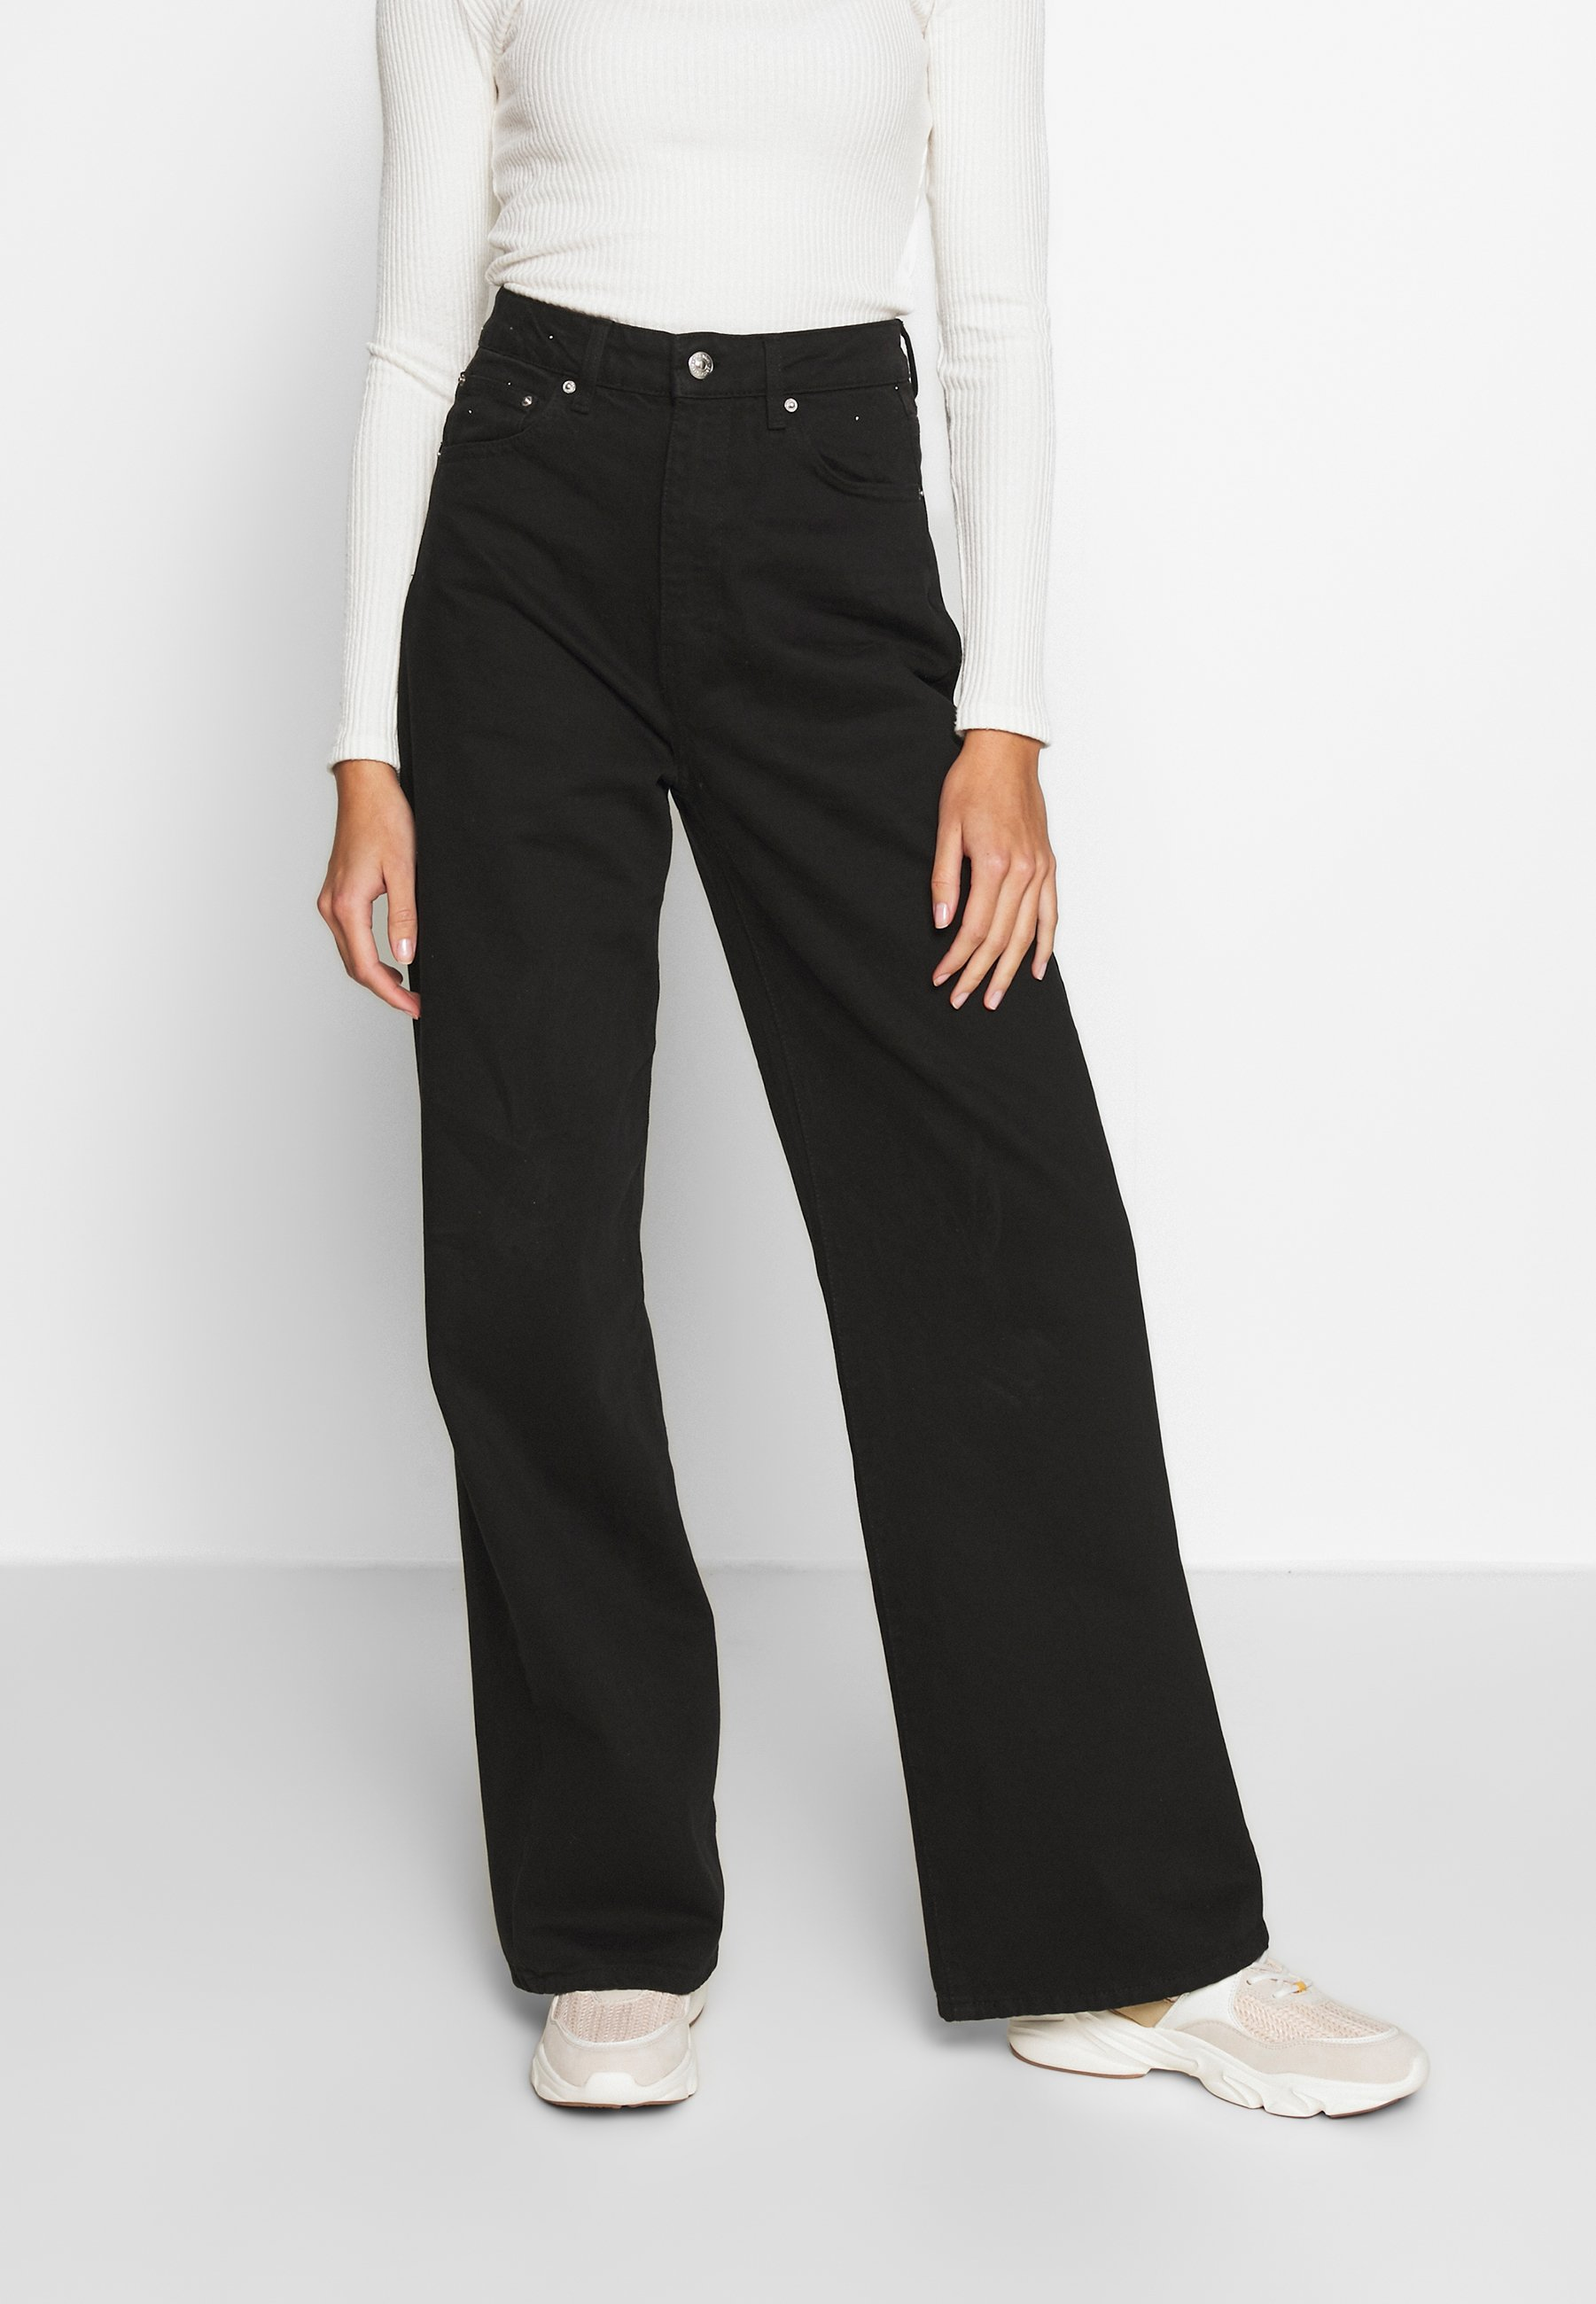 WIDE LEG Flared jeans black